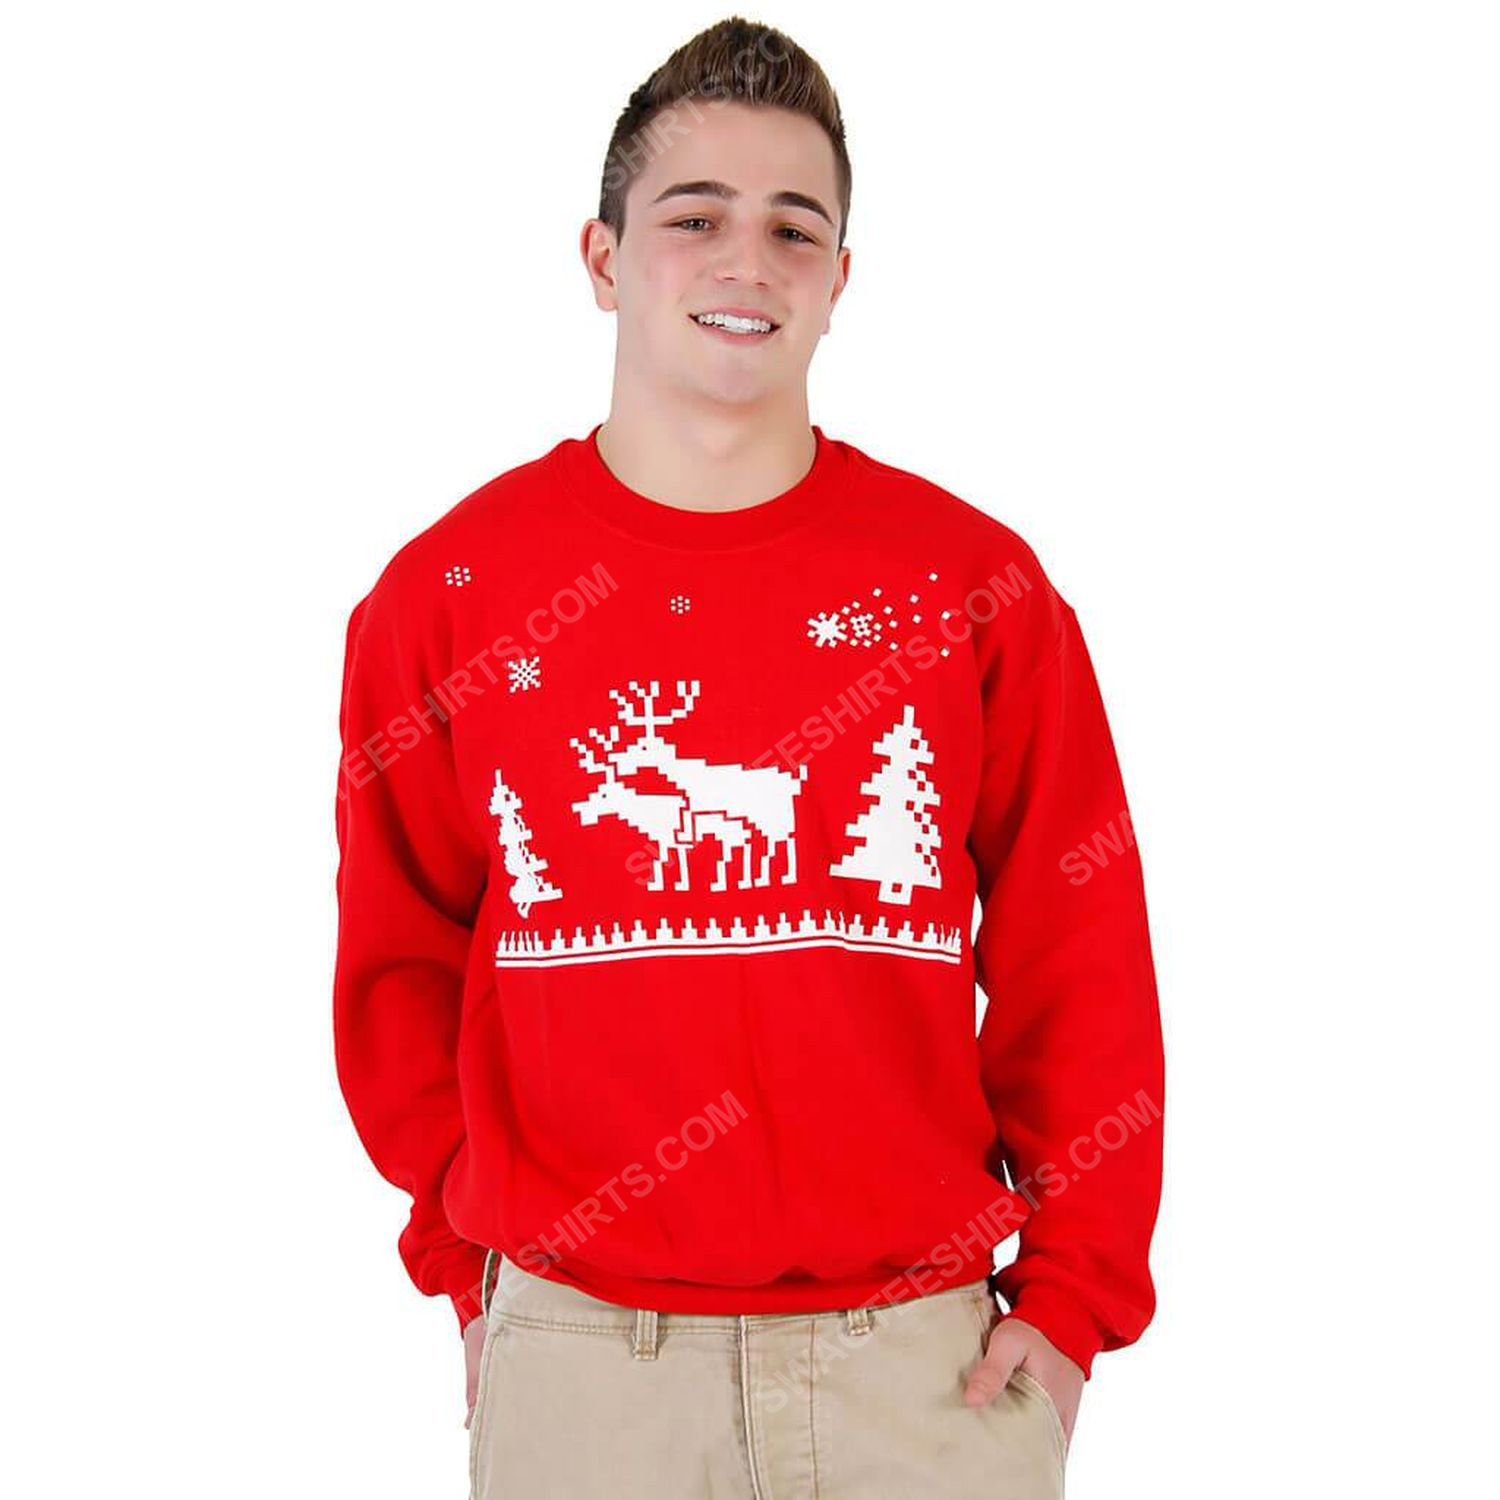 Humping reindeer full print ugly christmas sweater 2 - Copy